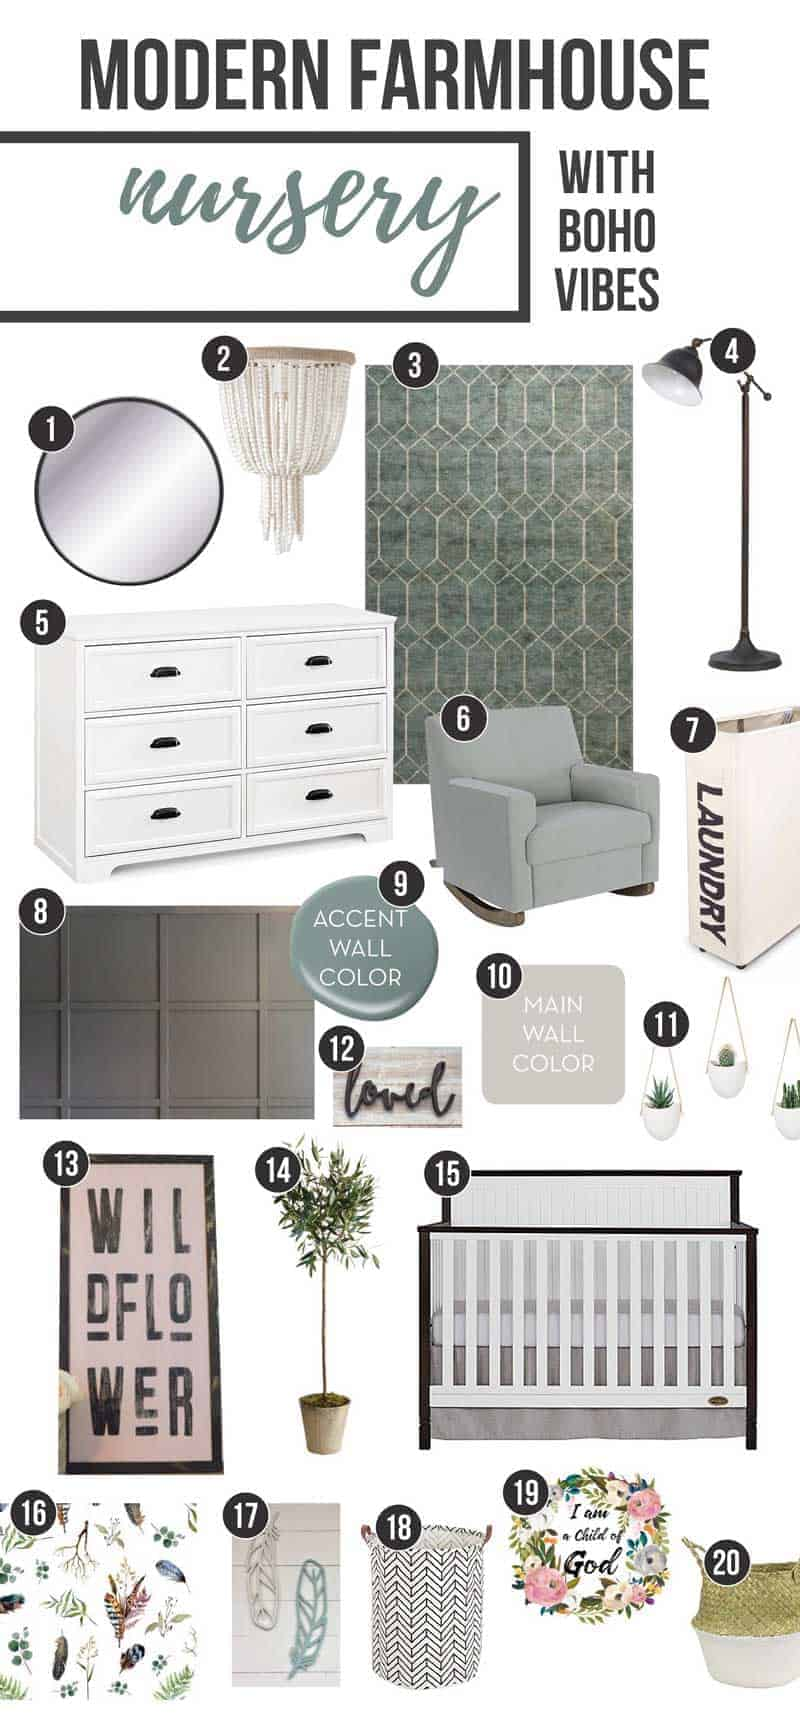 Photo collage showing design options for modern farmhouse baby nursery with boho vibes